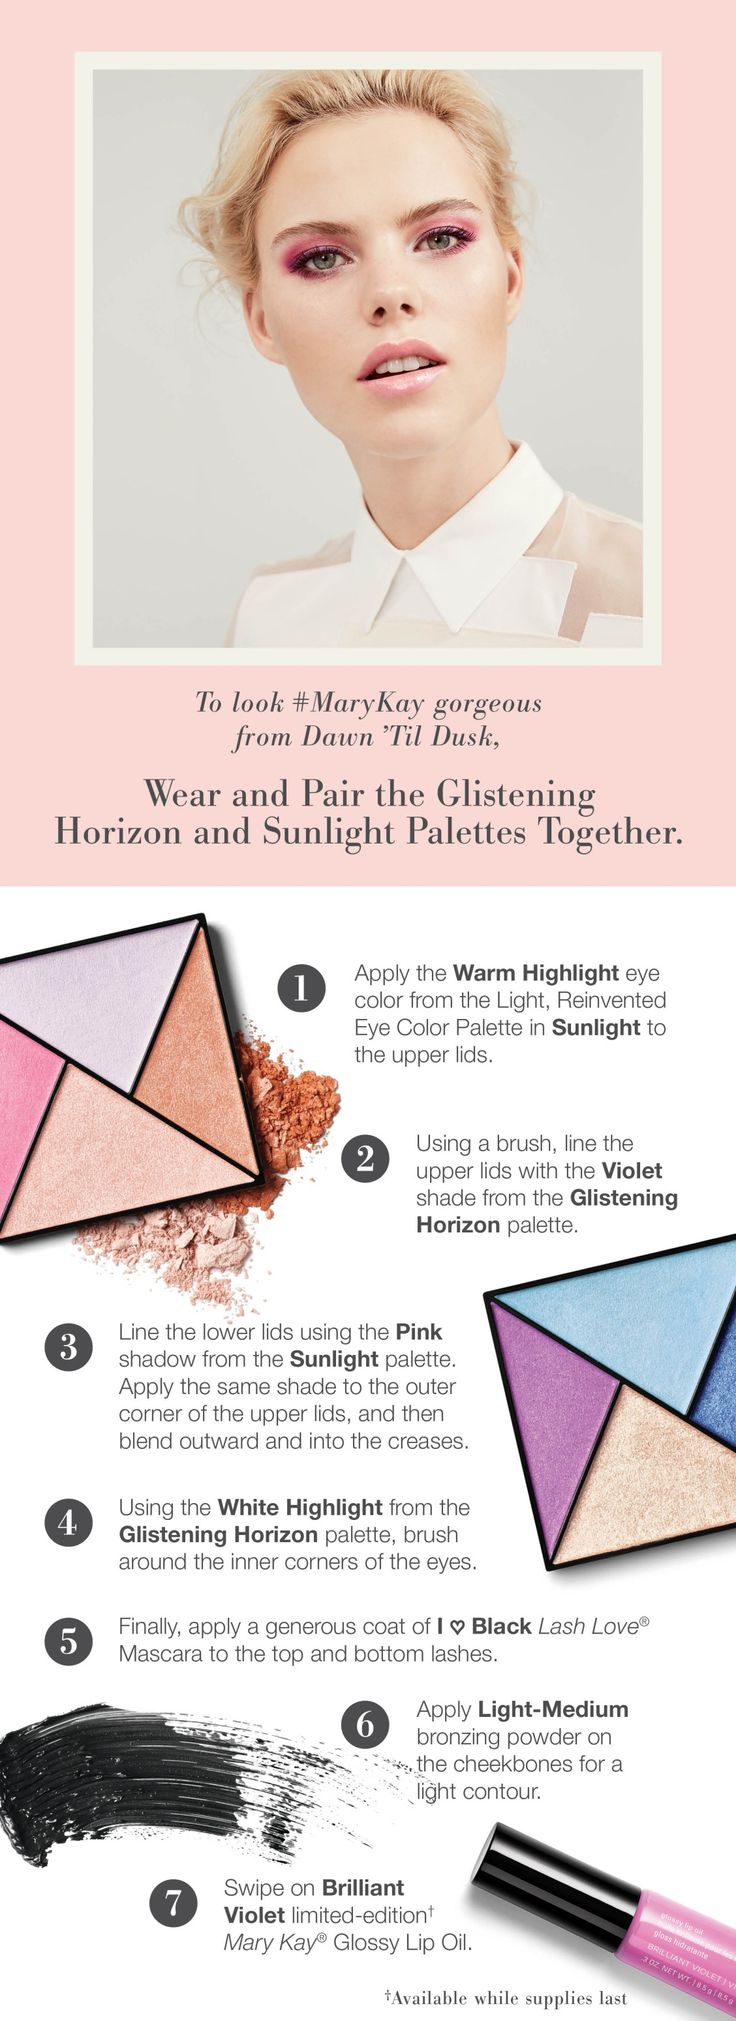 Need some ideas on how to wear our newest eye shadow shades? Try this simple eye makeup tutorial using both of the new Limited-Edition† Mary Kay® Eye Color Palettes!